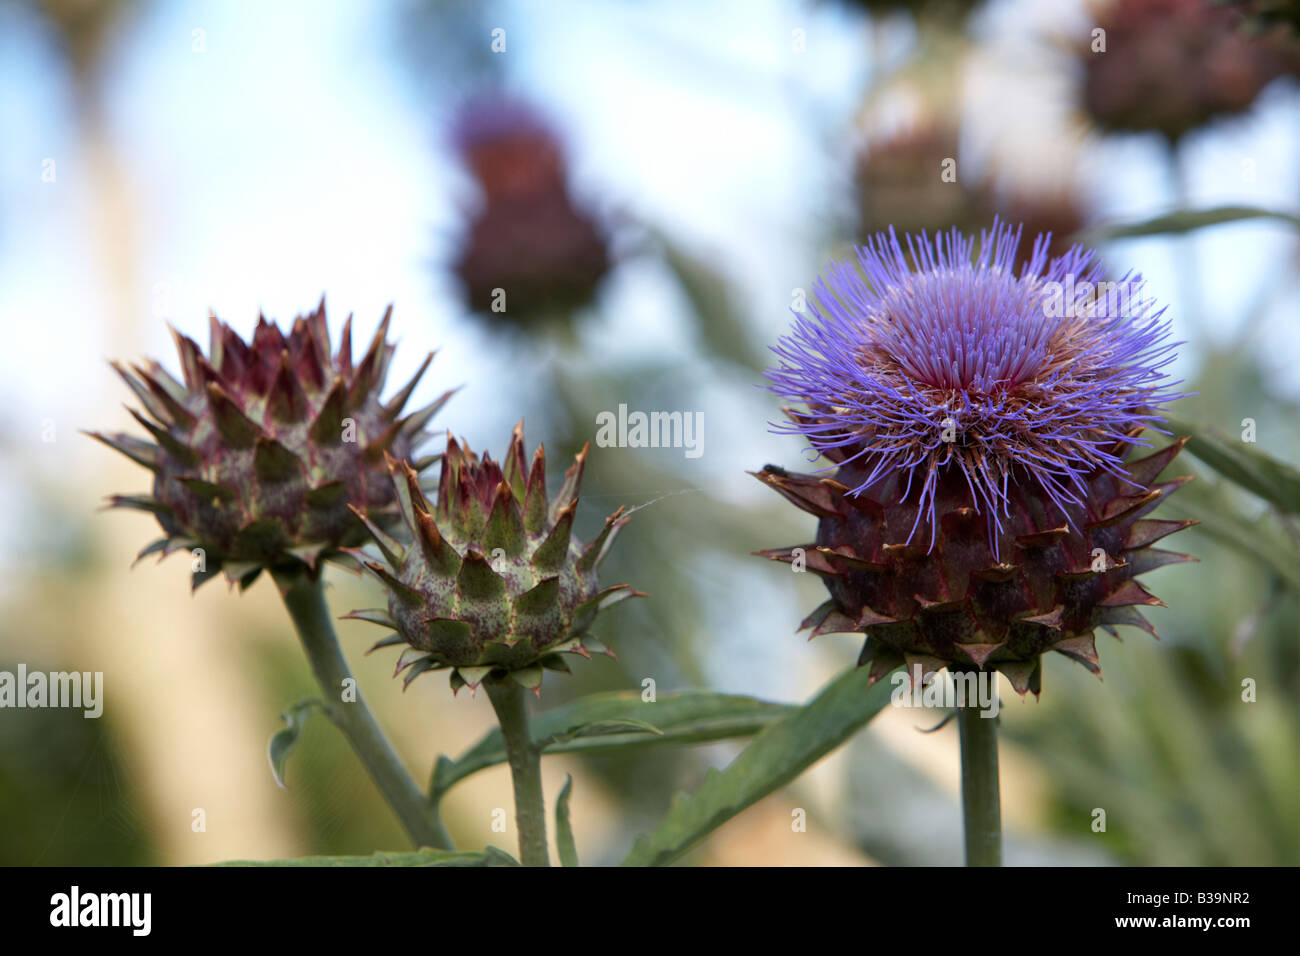 cardoon cynara cardunculus artichoke thistle plant growing and flowering in a herb garden - Stock Image